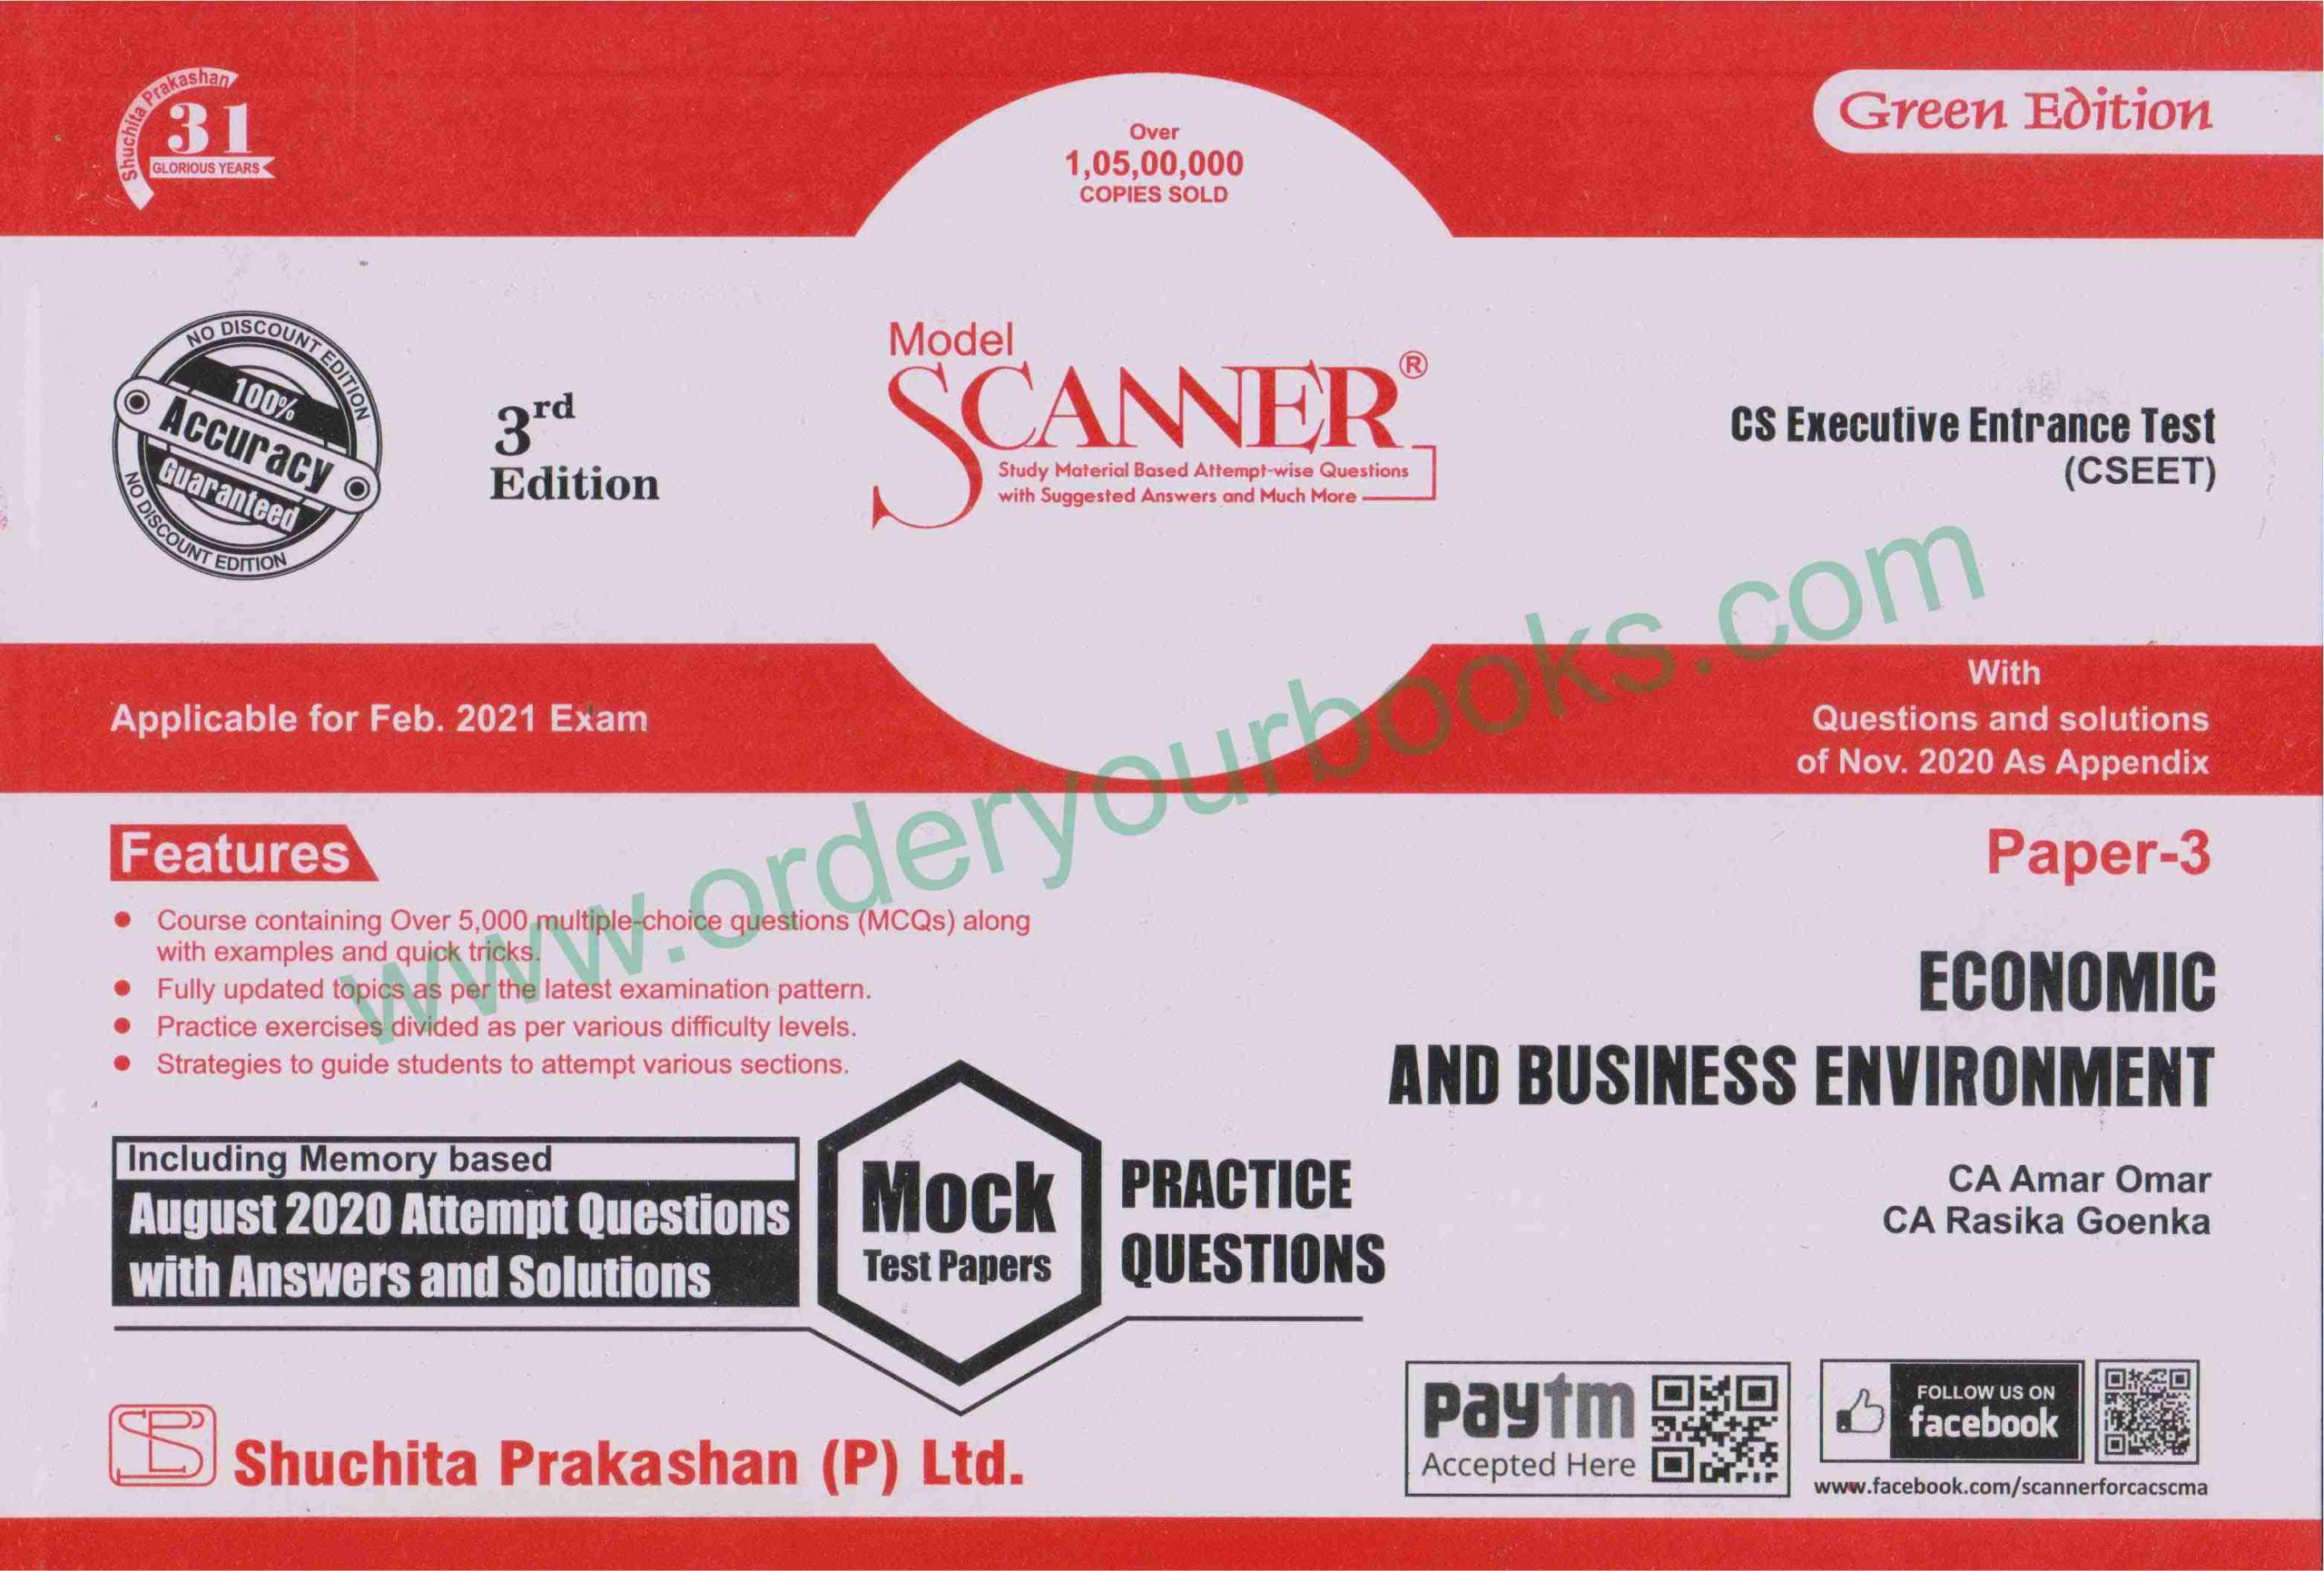 CS Executive Entrance Test [CSEET], Paper-3 Economic and business enviroment by CA Amar Omar and CA Rasika Goenka Applicable for 2021 Exam